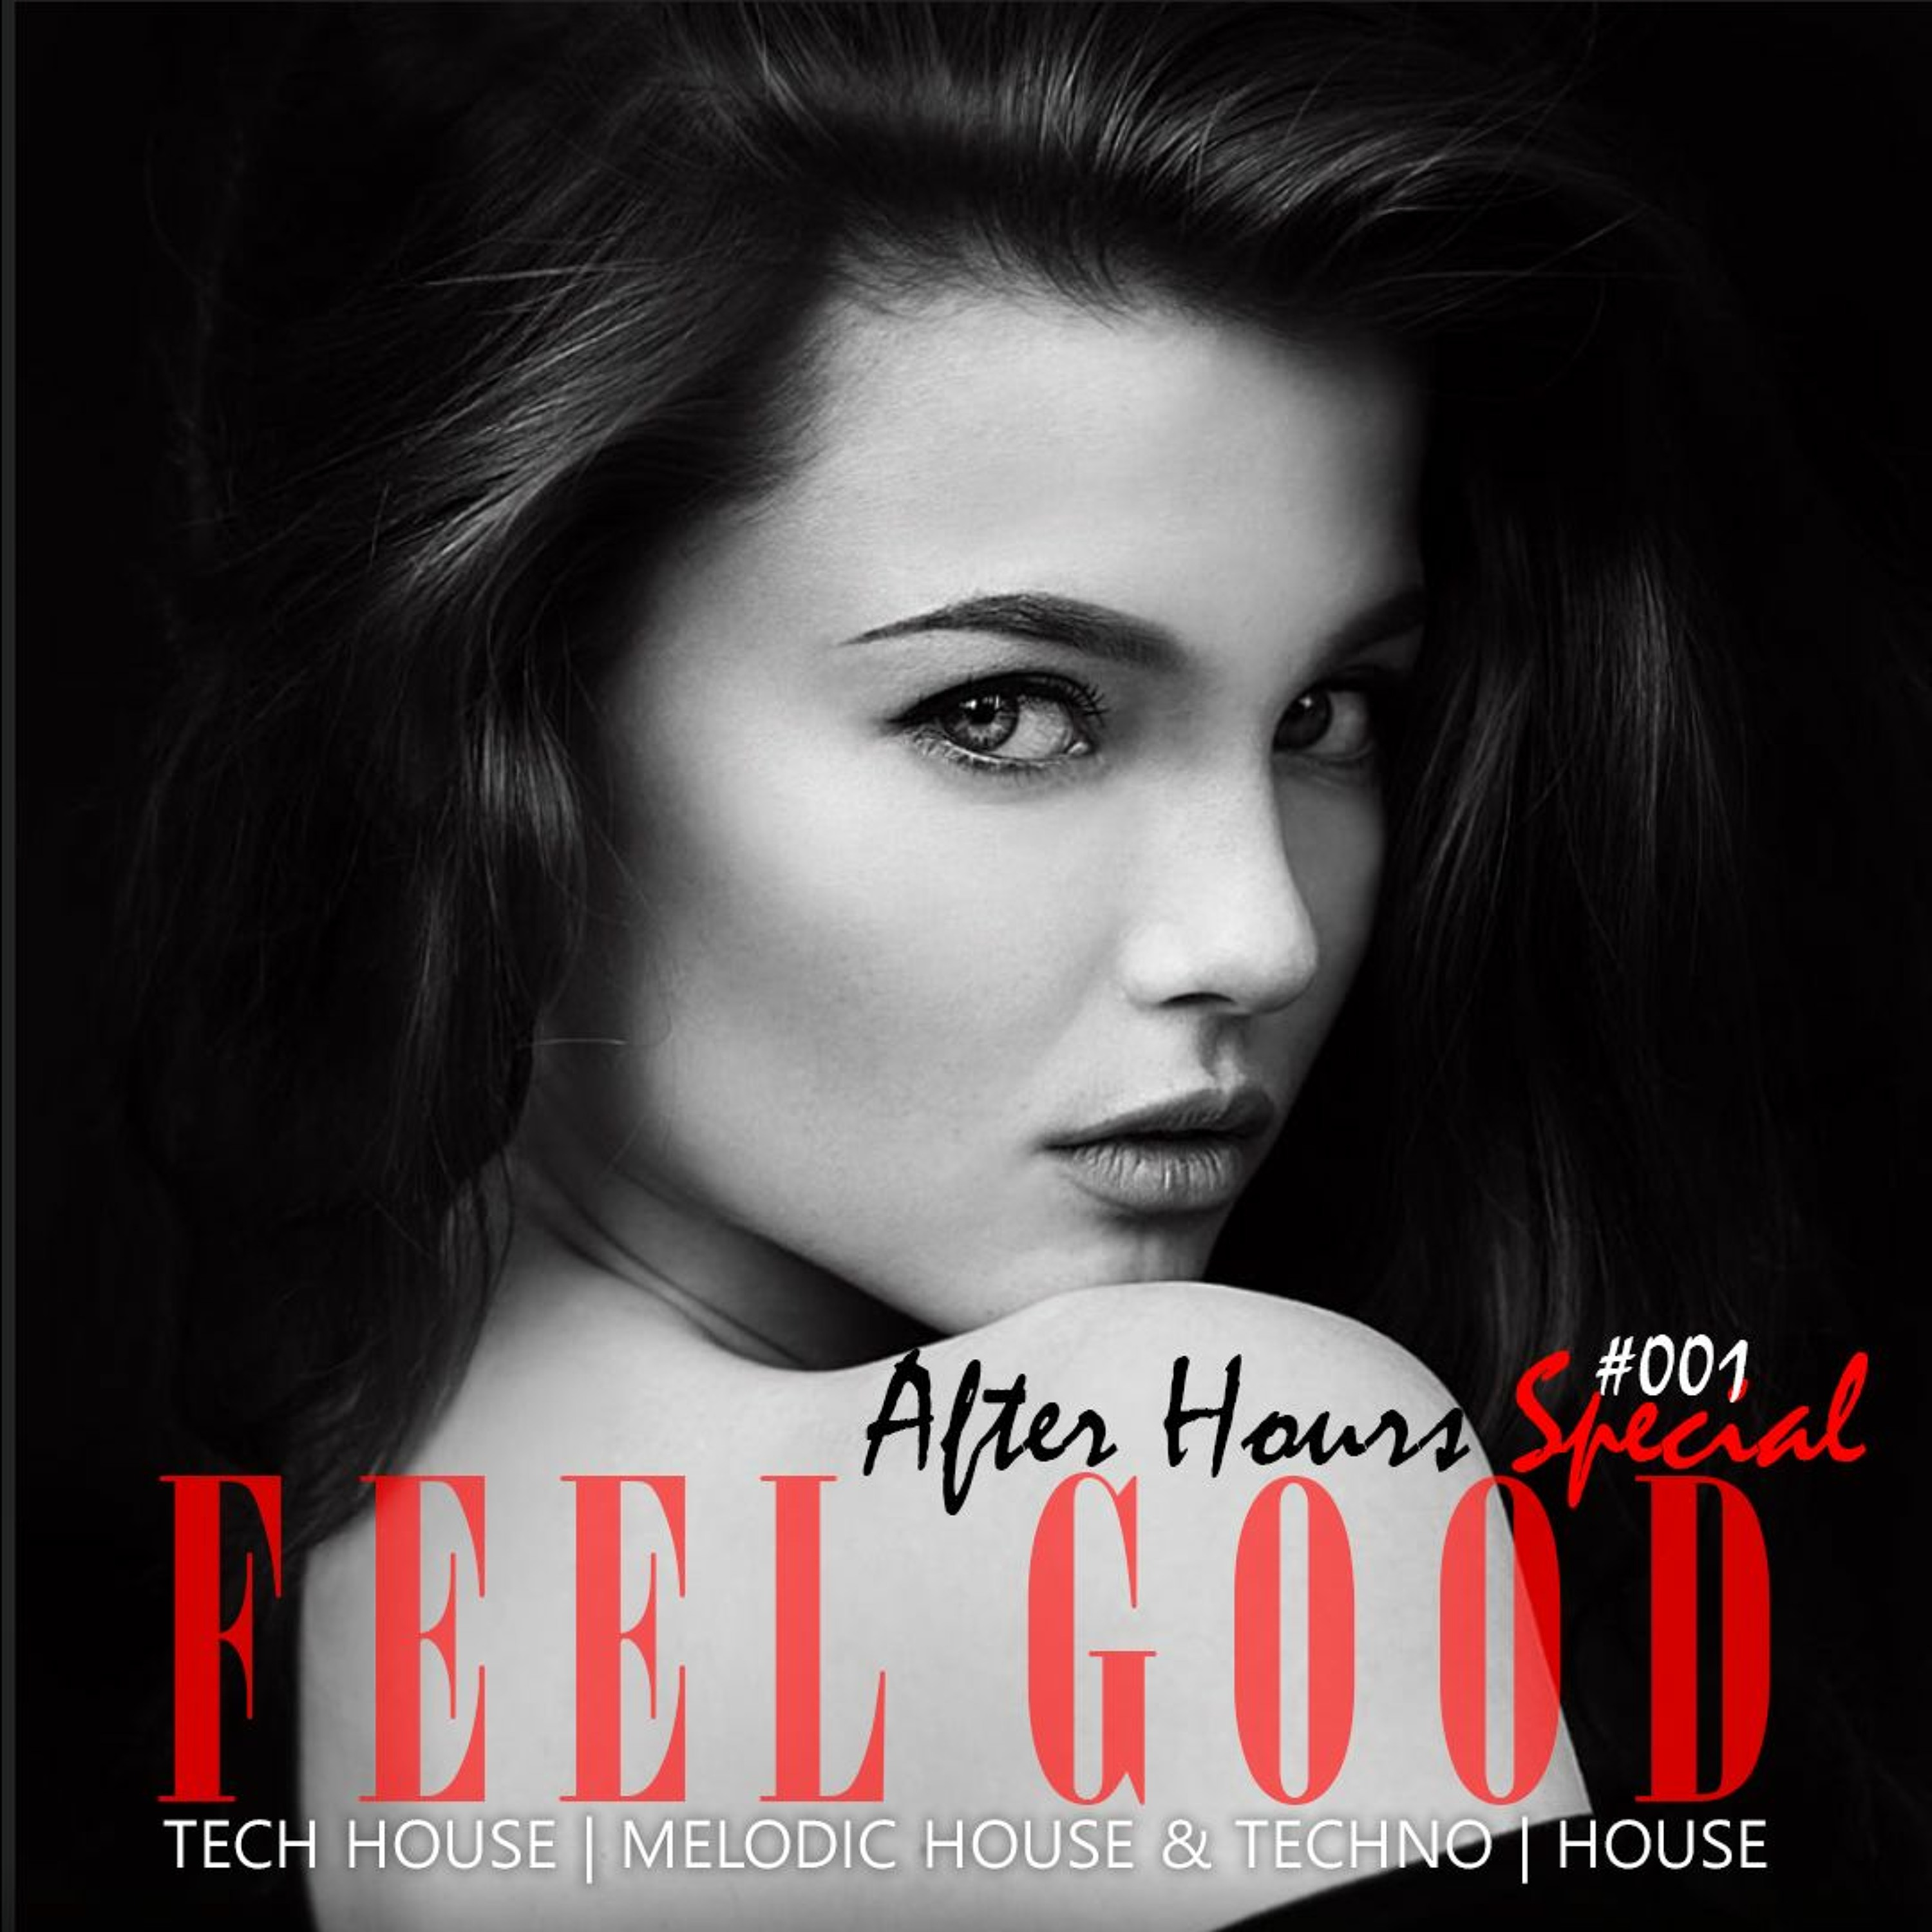 Feel Good After Hours #001 - 2 Hour House Set